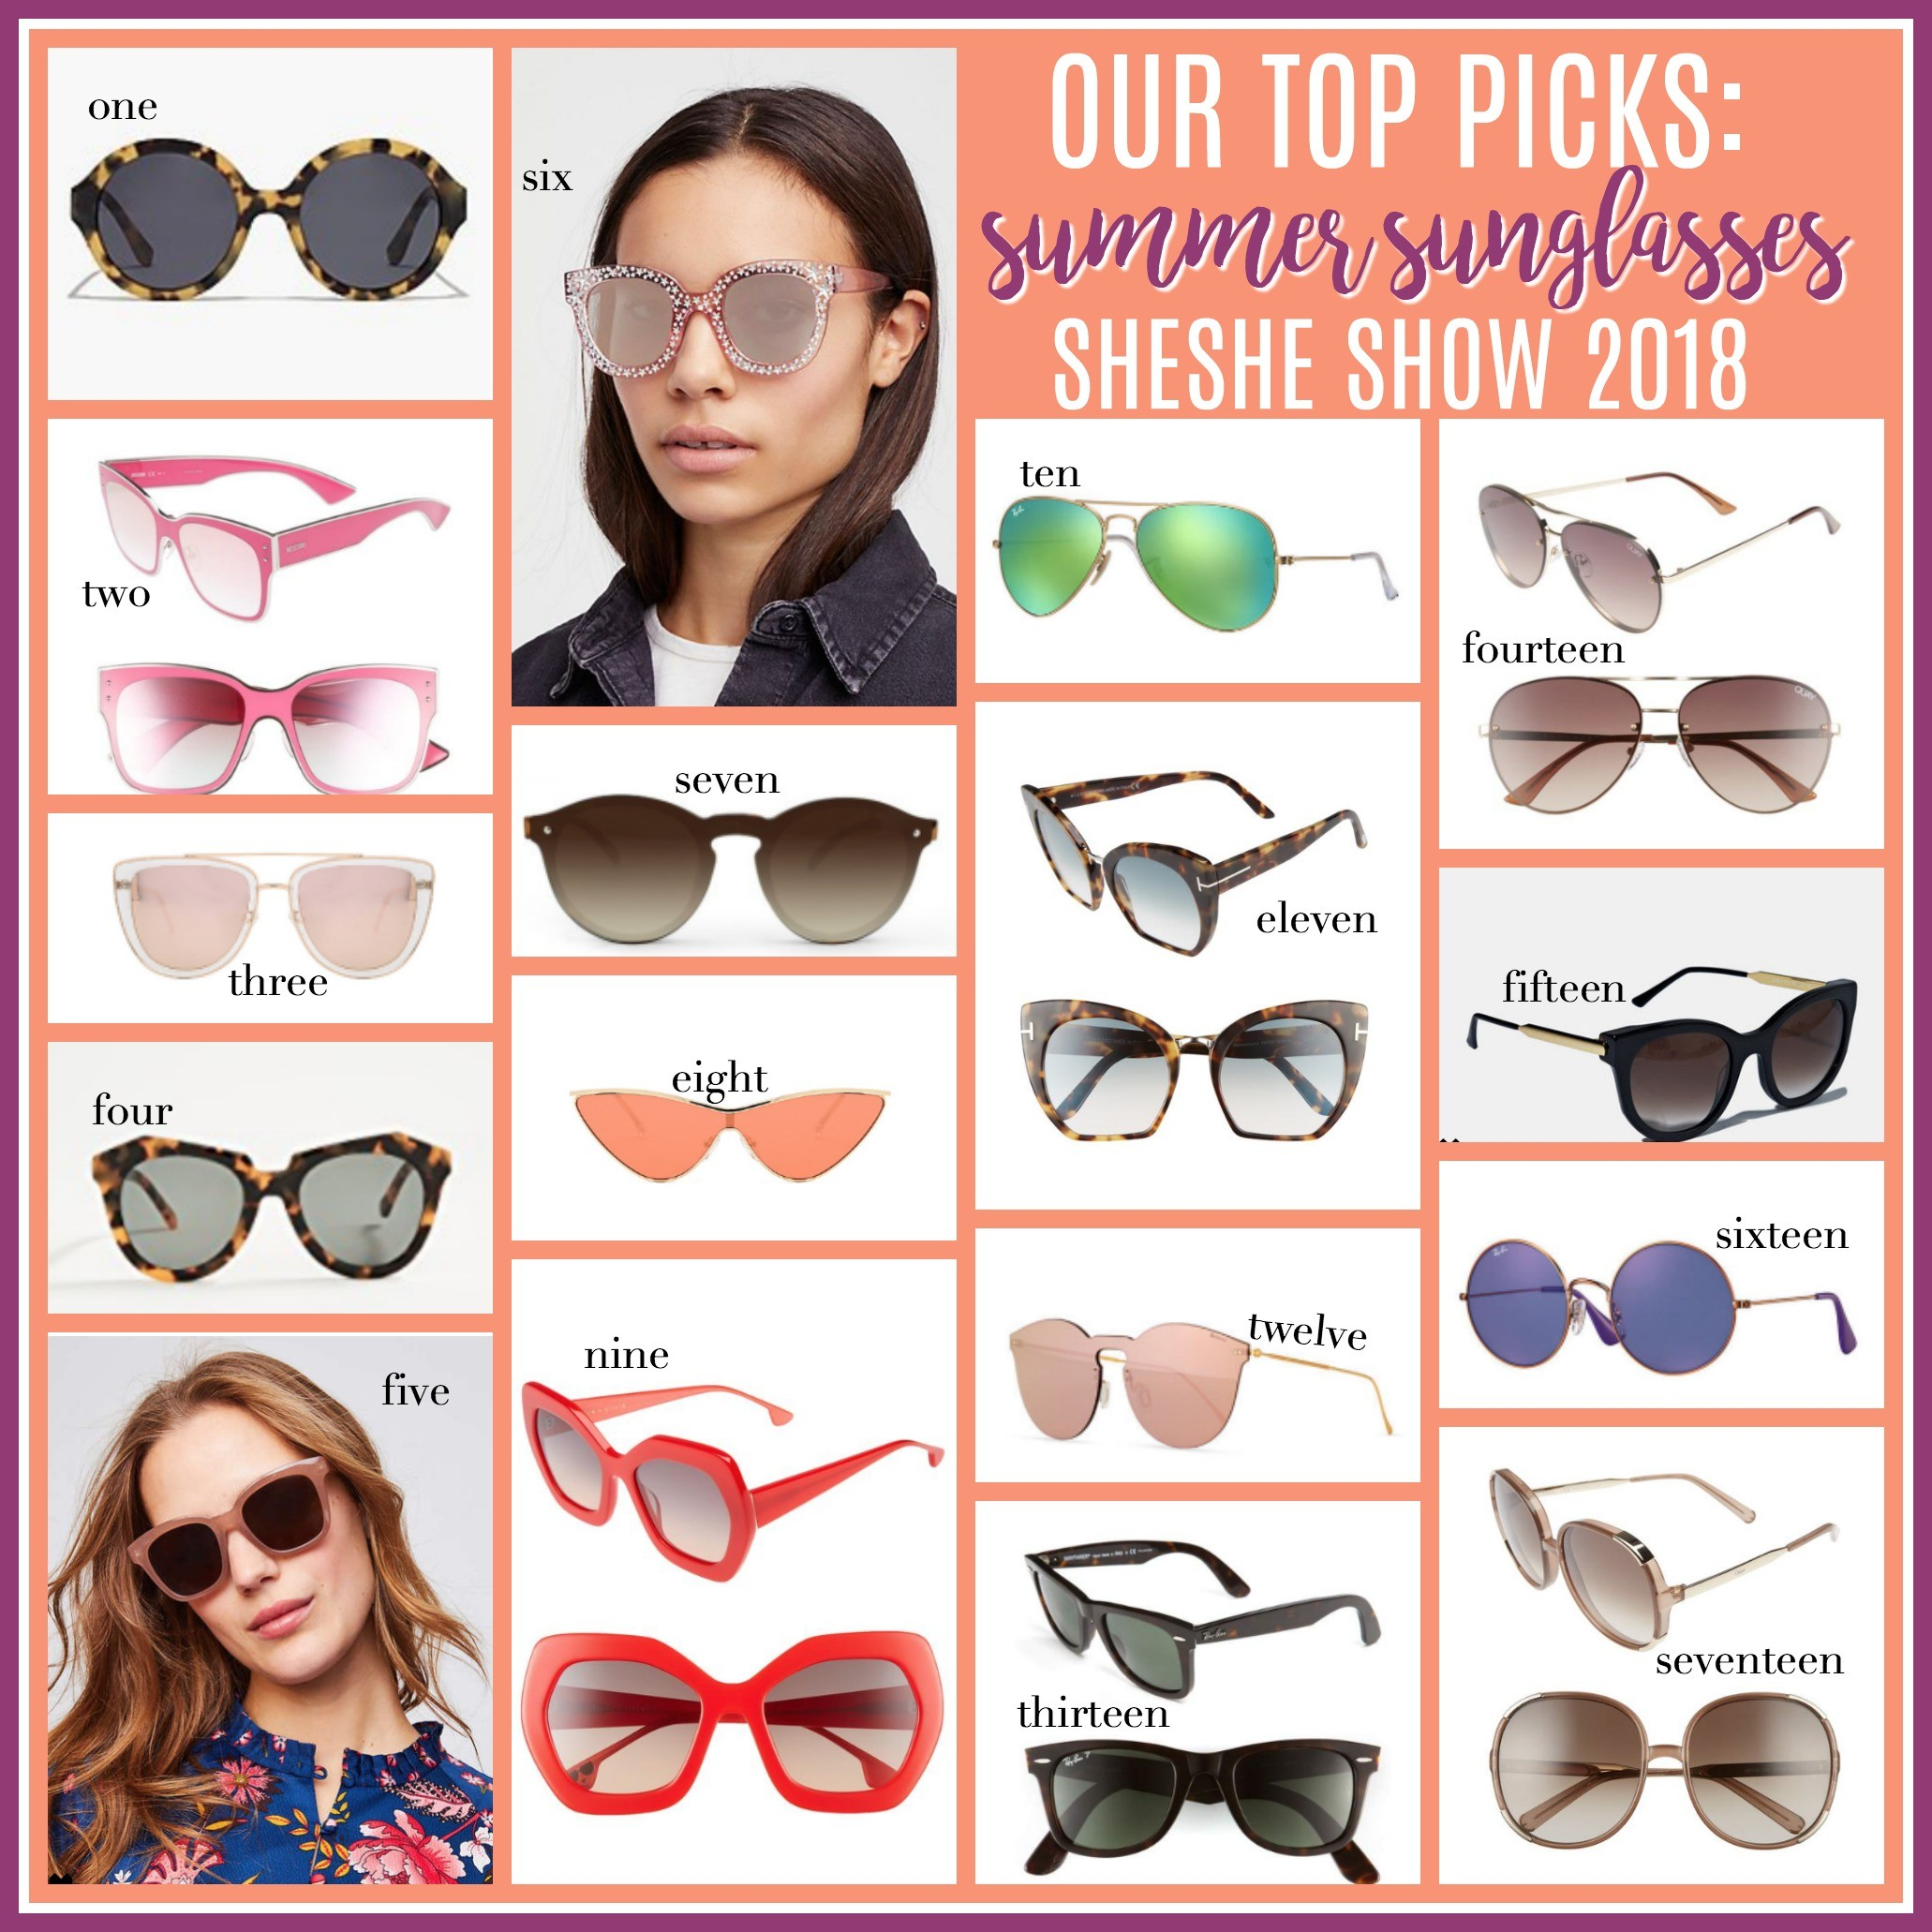 5a8e7f5b80 Let us know which pair of sunglasses is your favorite